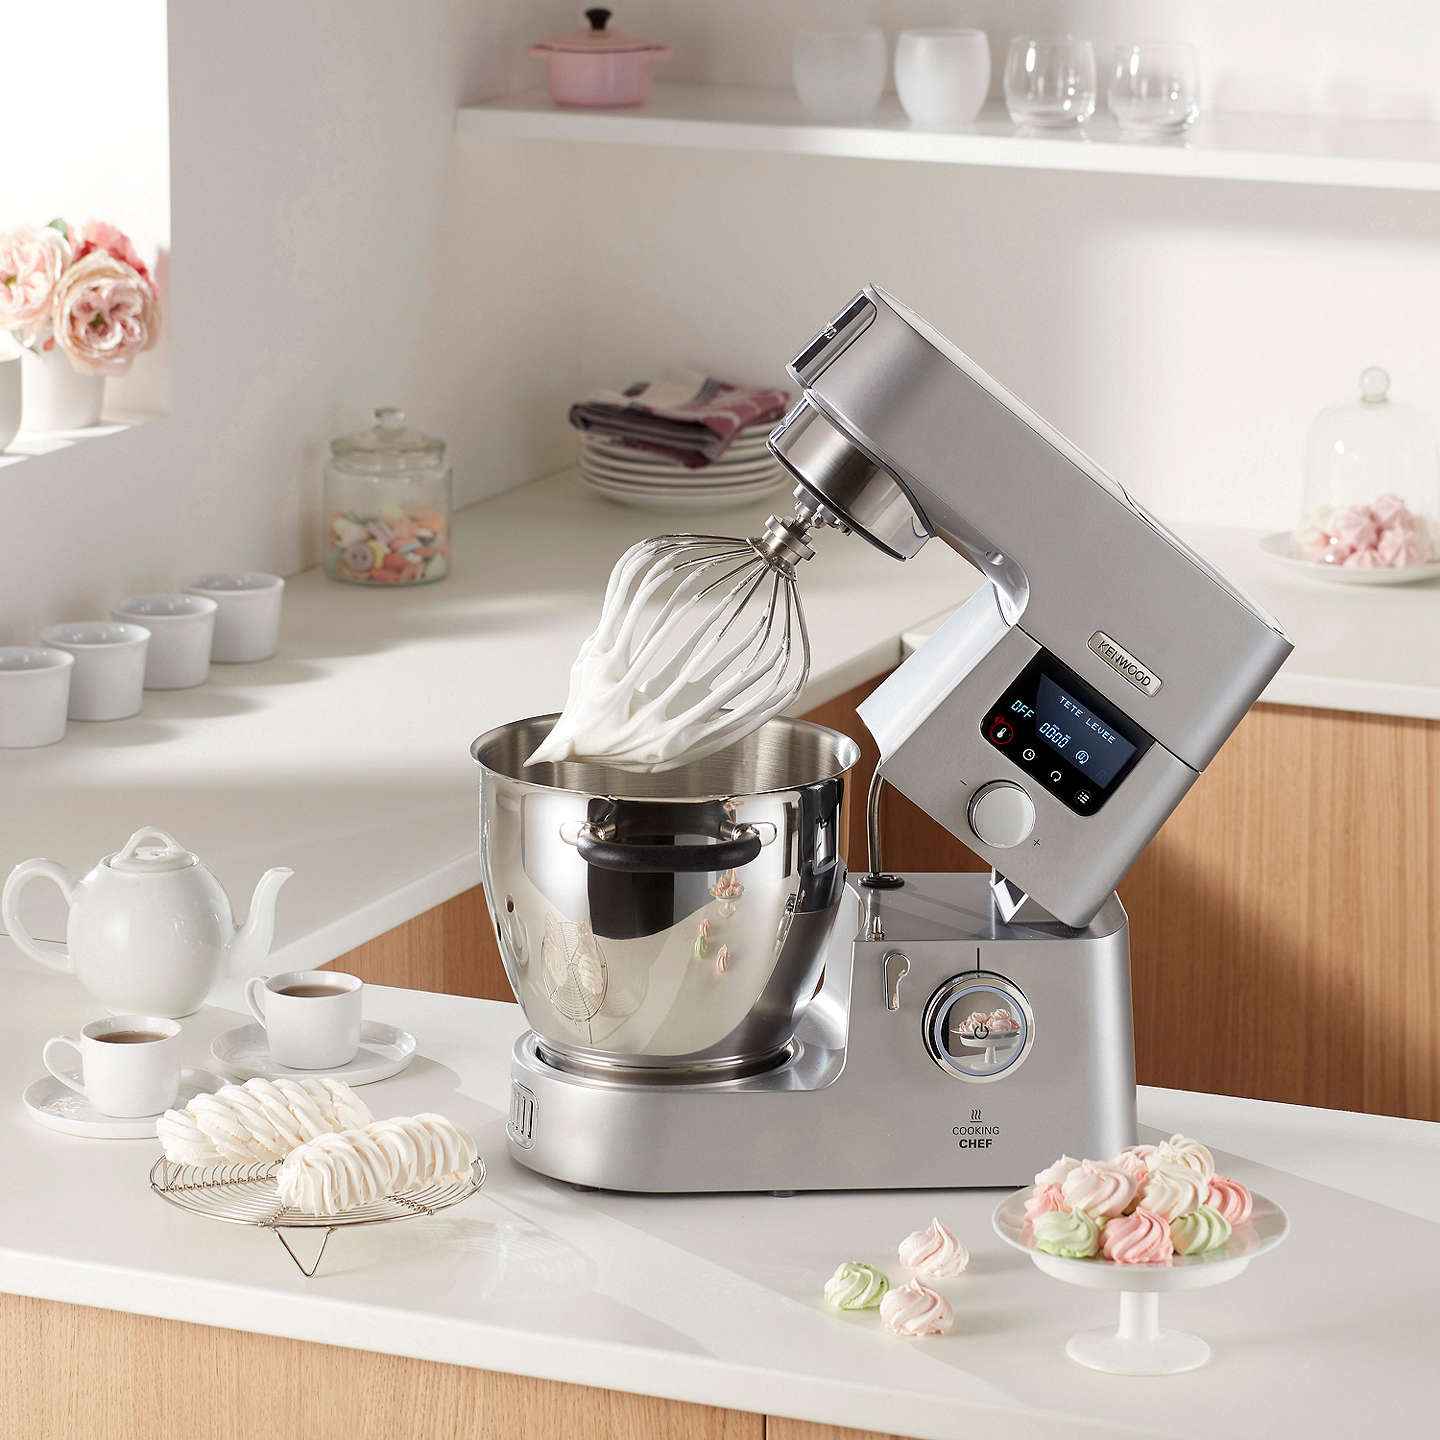 Kenwood kcc9060s cooking chef stand mixer silver at john lewis buykenwood kcc9060s cooking chef stand mixer silver online at johnlewis forumfinder Gallery